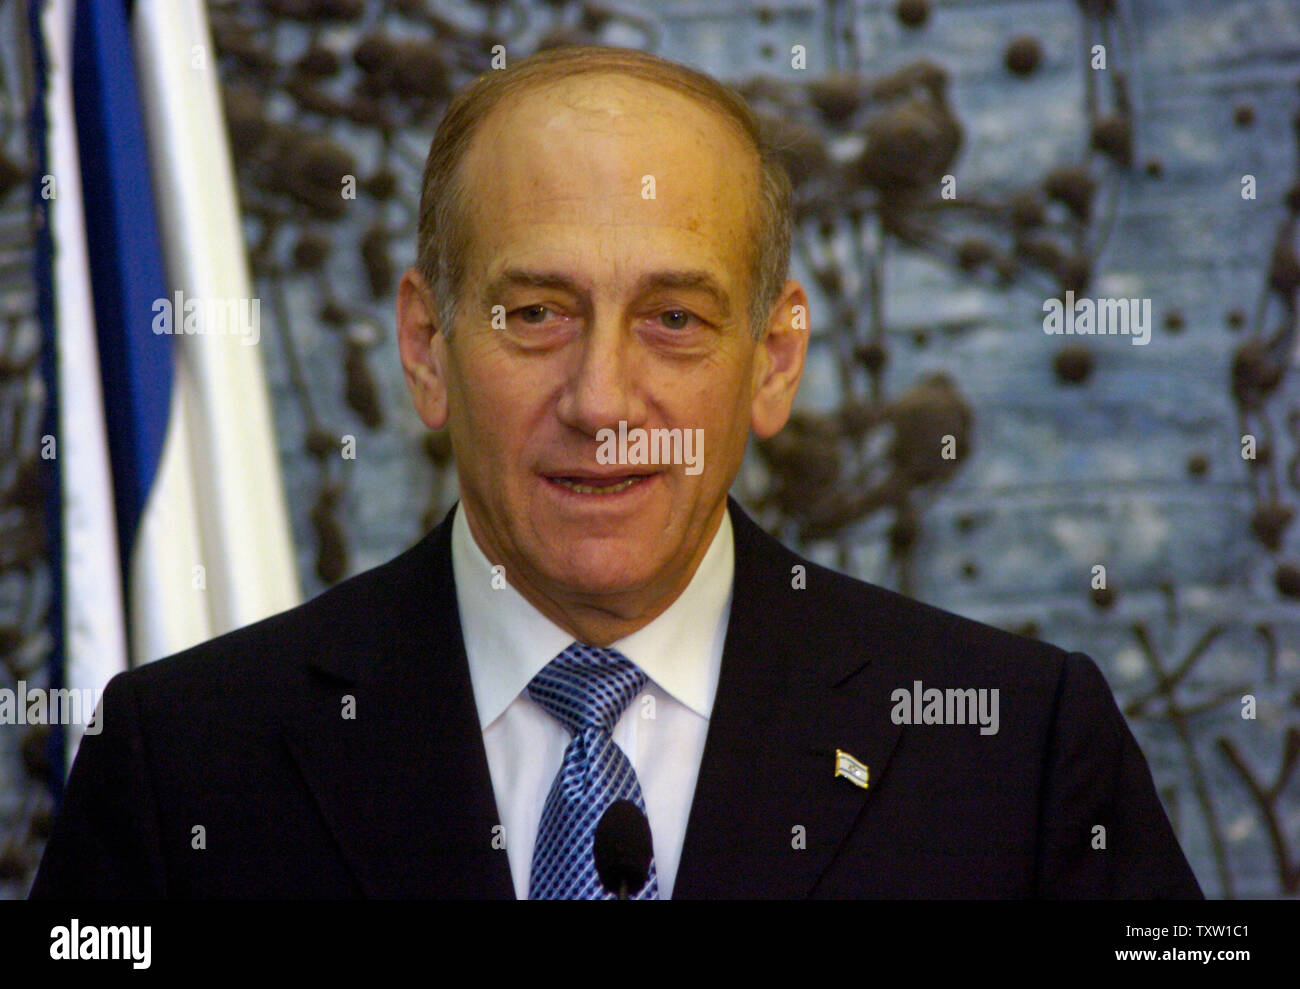 Israeli Acting Prime Minister Ehud Olmert attends a press conference at  President Moshe Katsav's residence in Jerusalem after being formally ask by President Moshe Katsav to form the next government, April 6, 2006, officially making the Kadima leader the prime minister-designate. (UPI Photo/Debbie Hill) - Stock Image